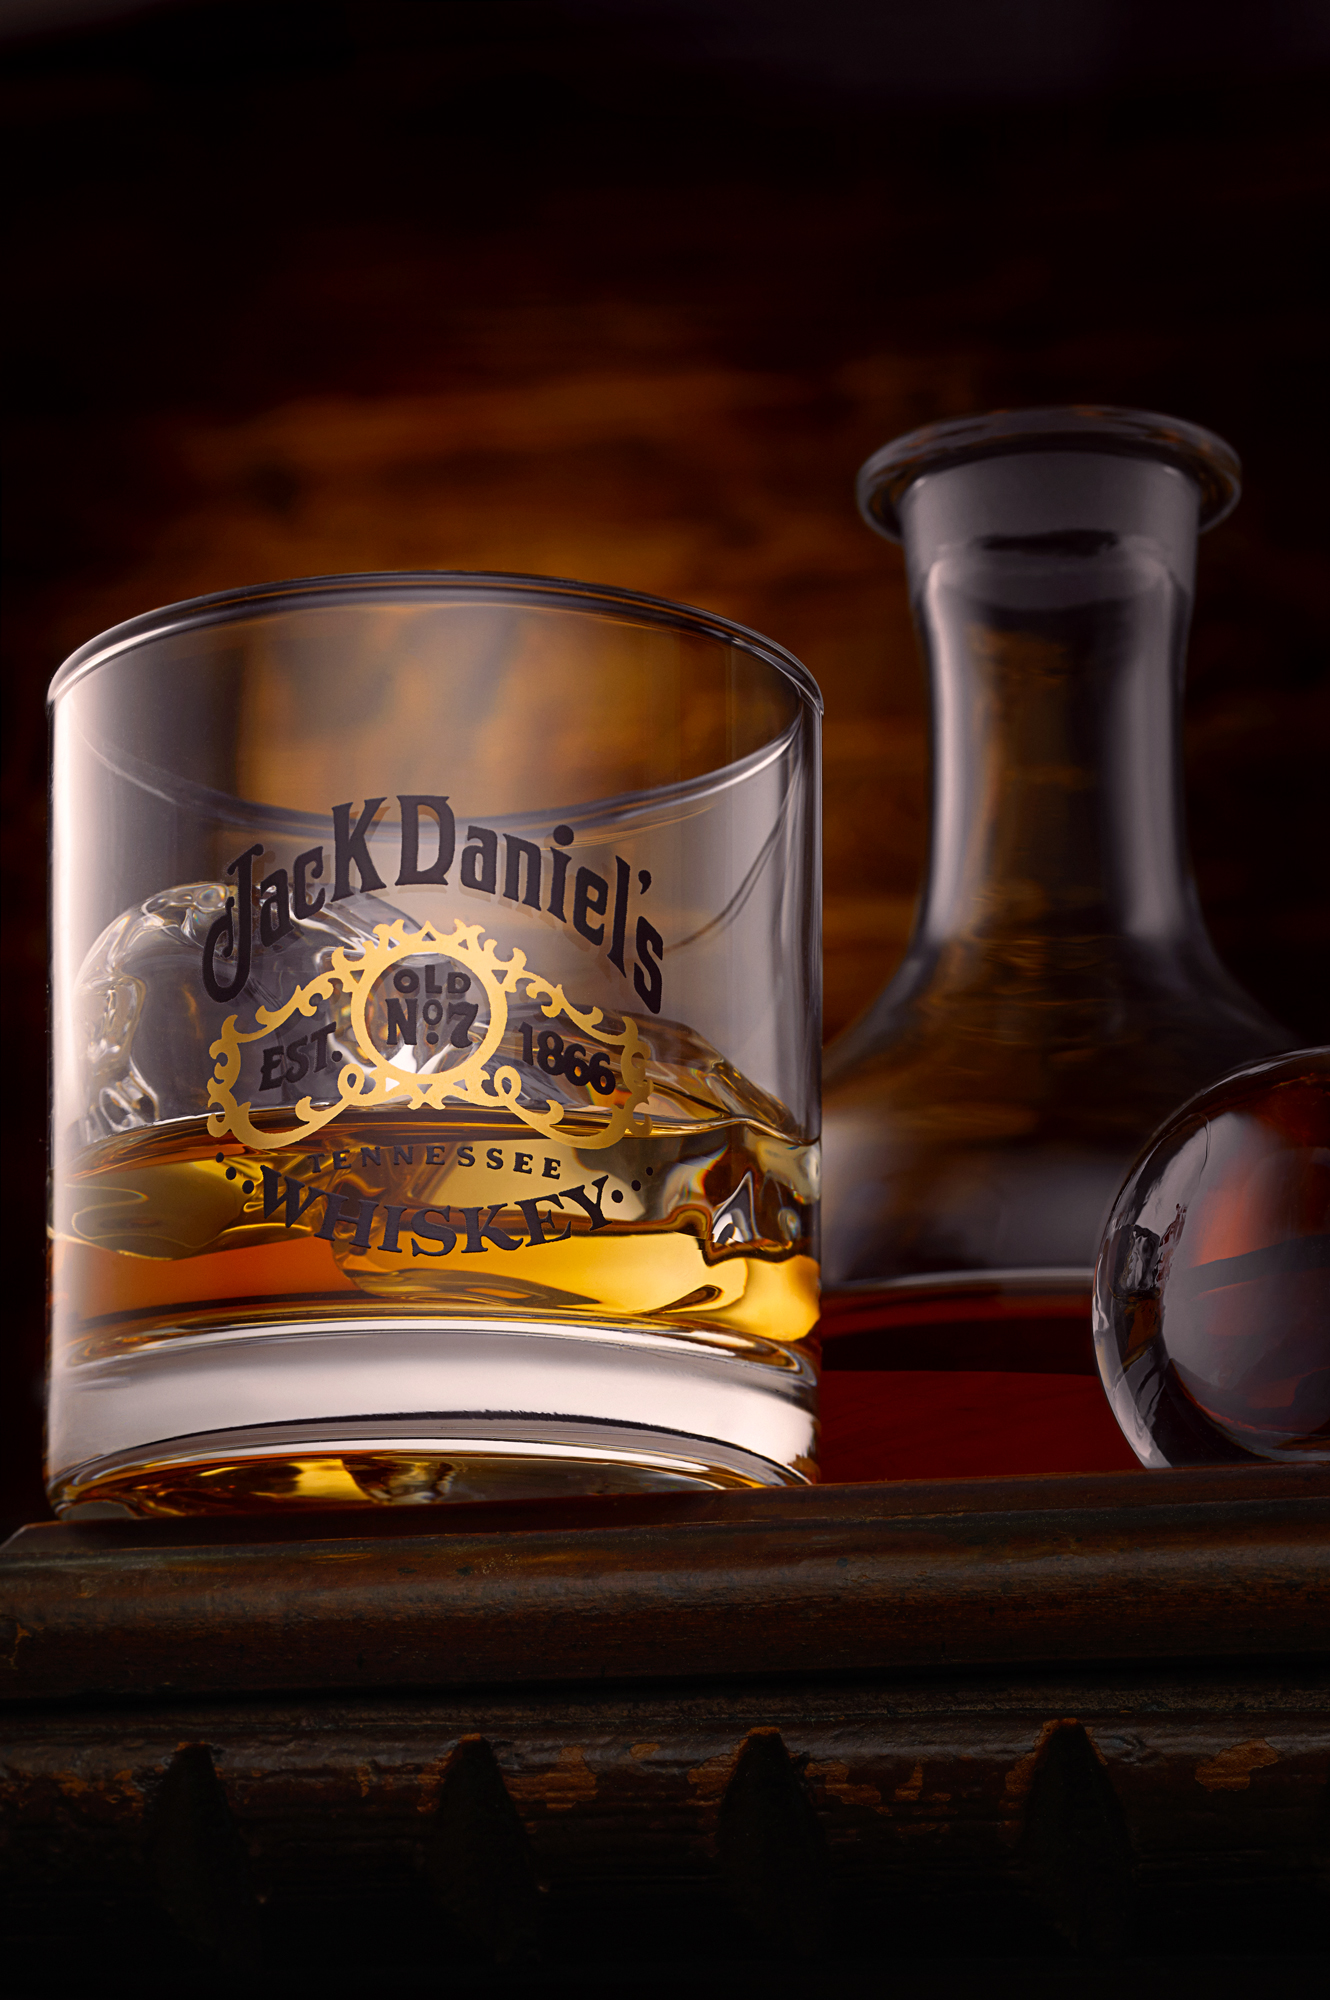 Jack Daniel's Old #7 Whiskey